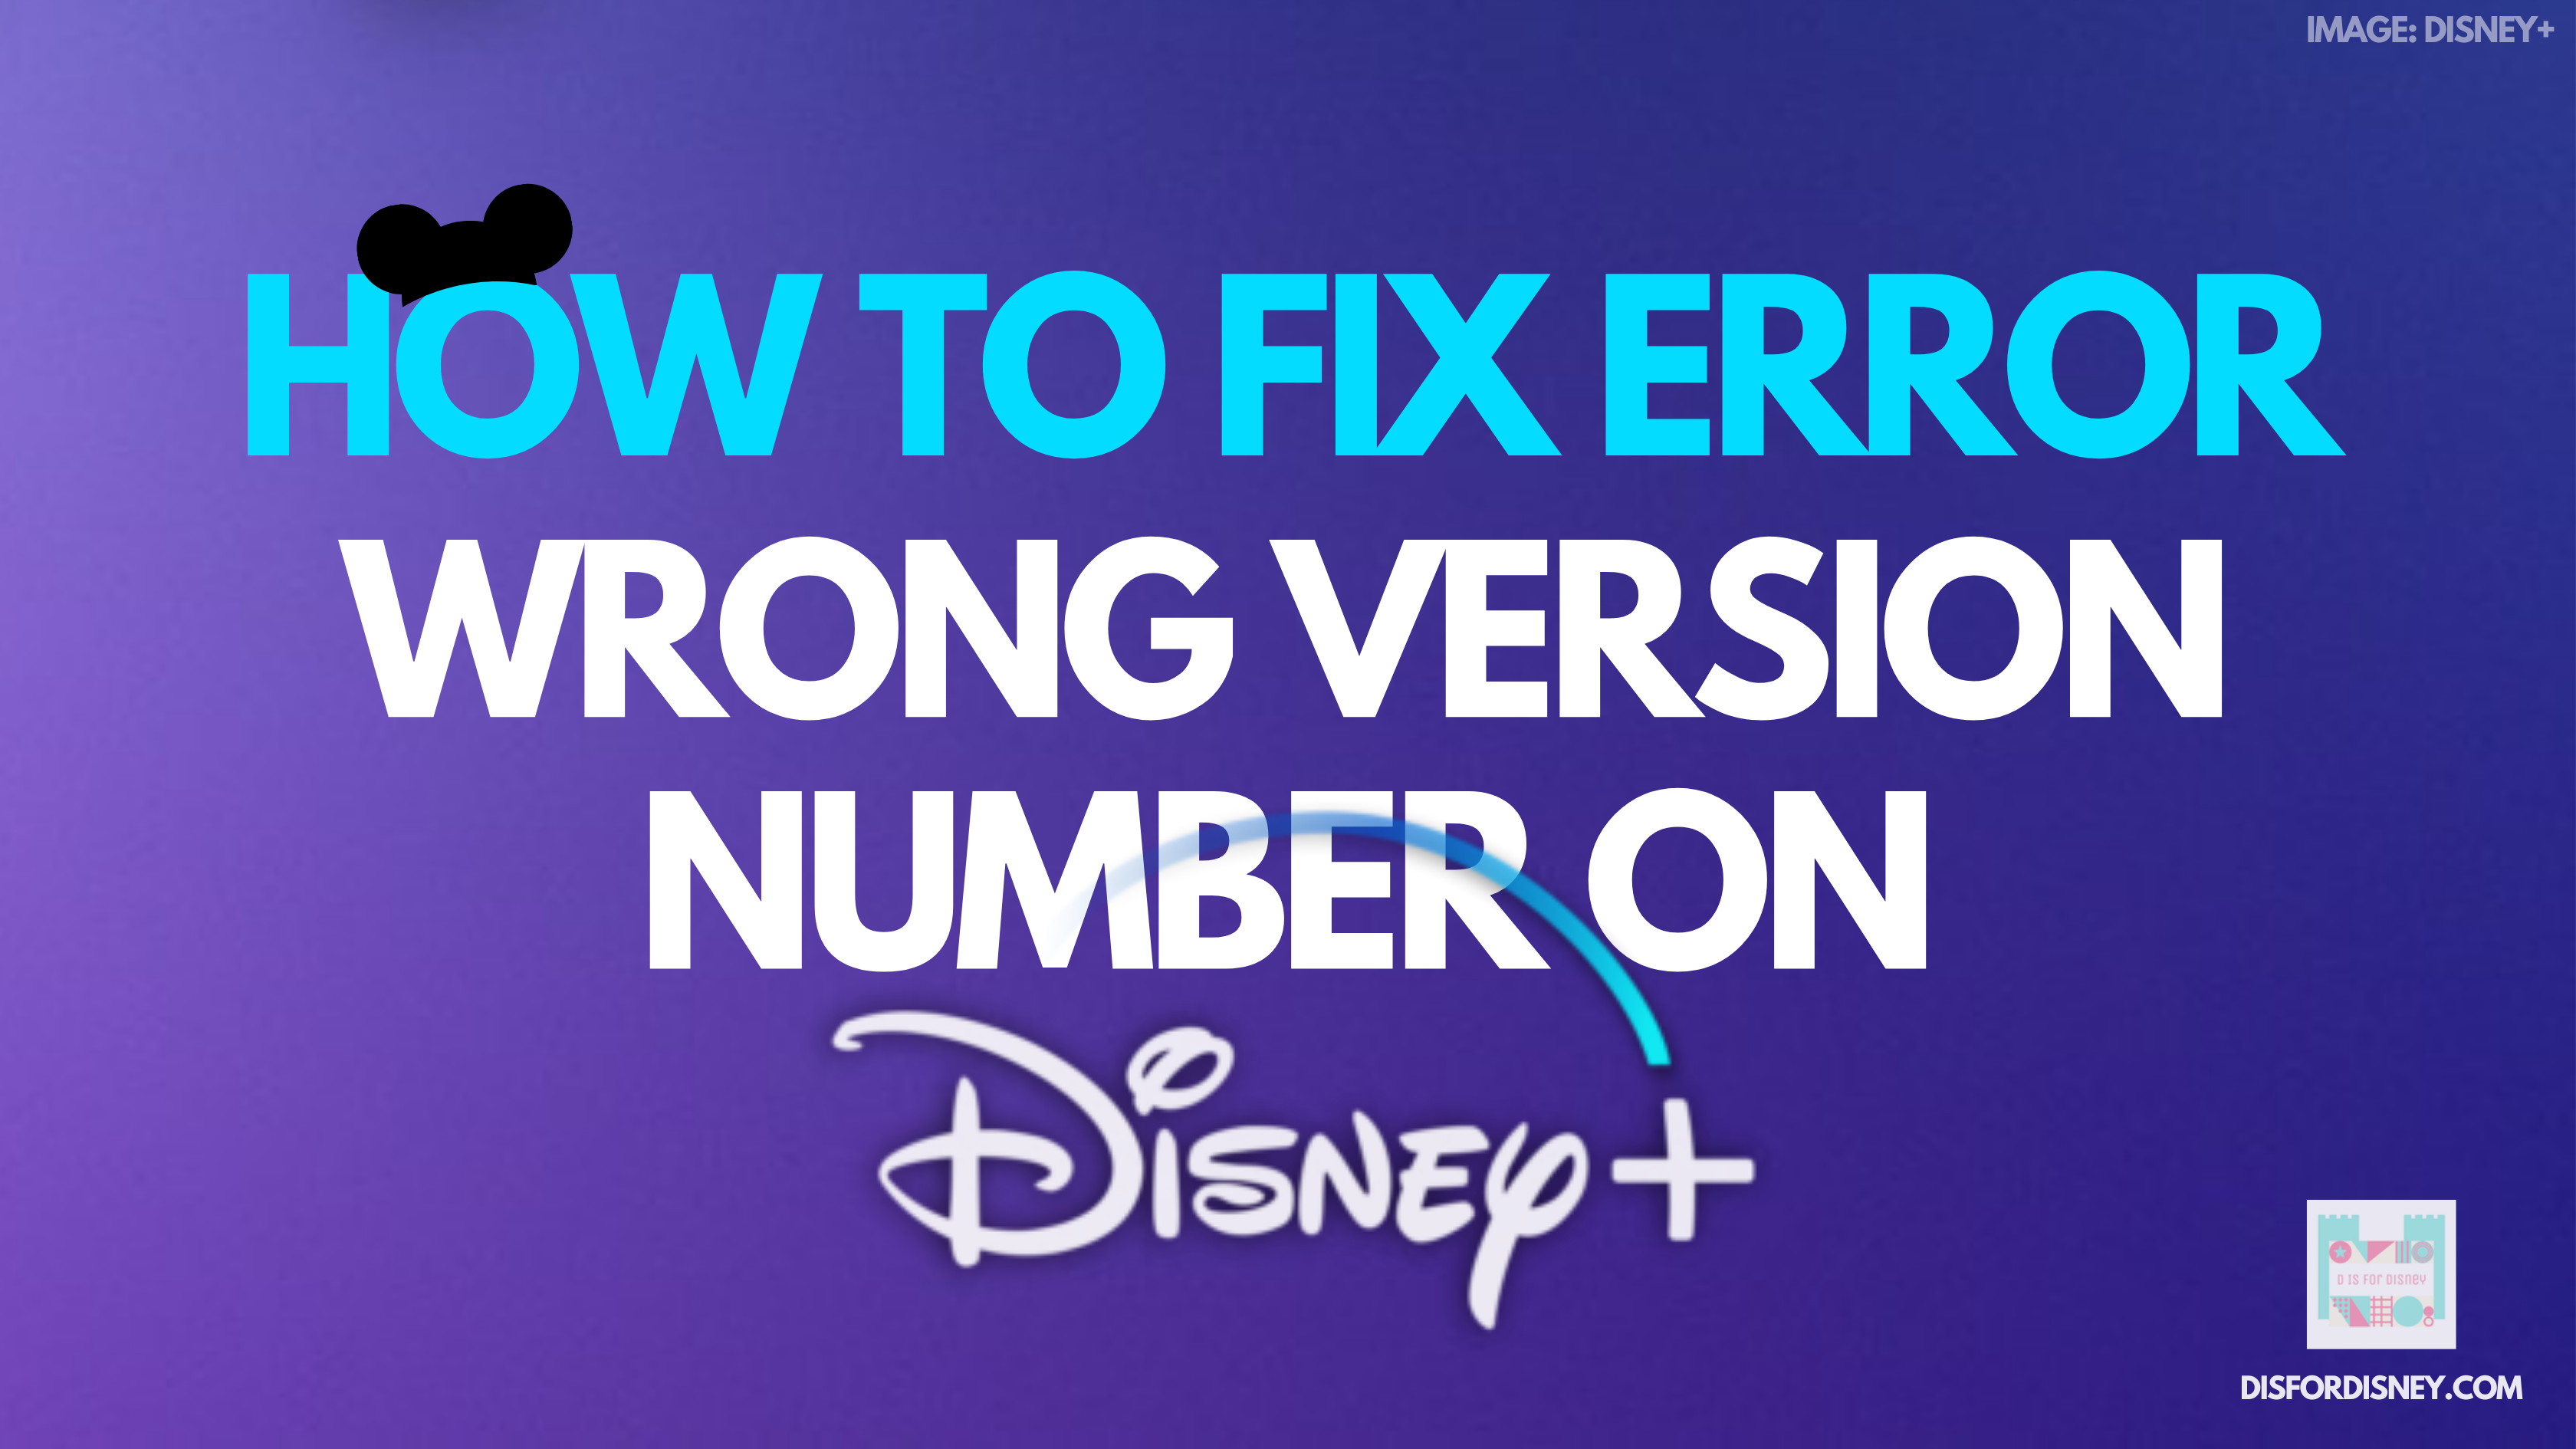 How-to-Fix-Disney-Plus-Error-Wrong-Version-Number